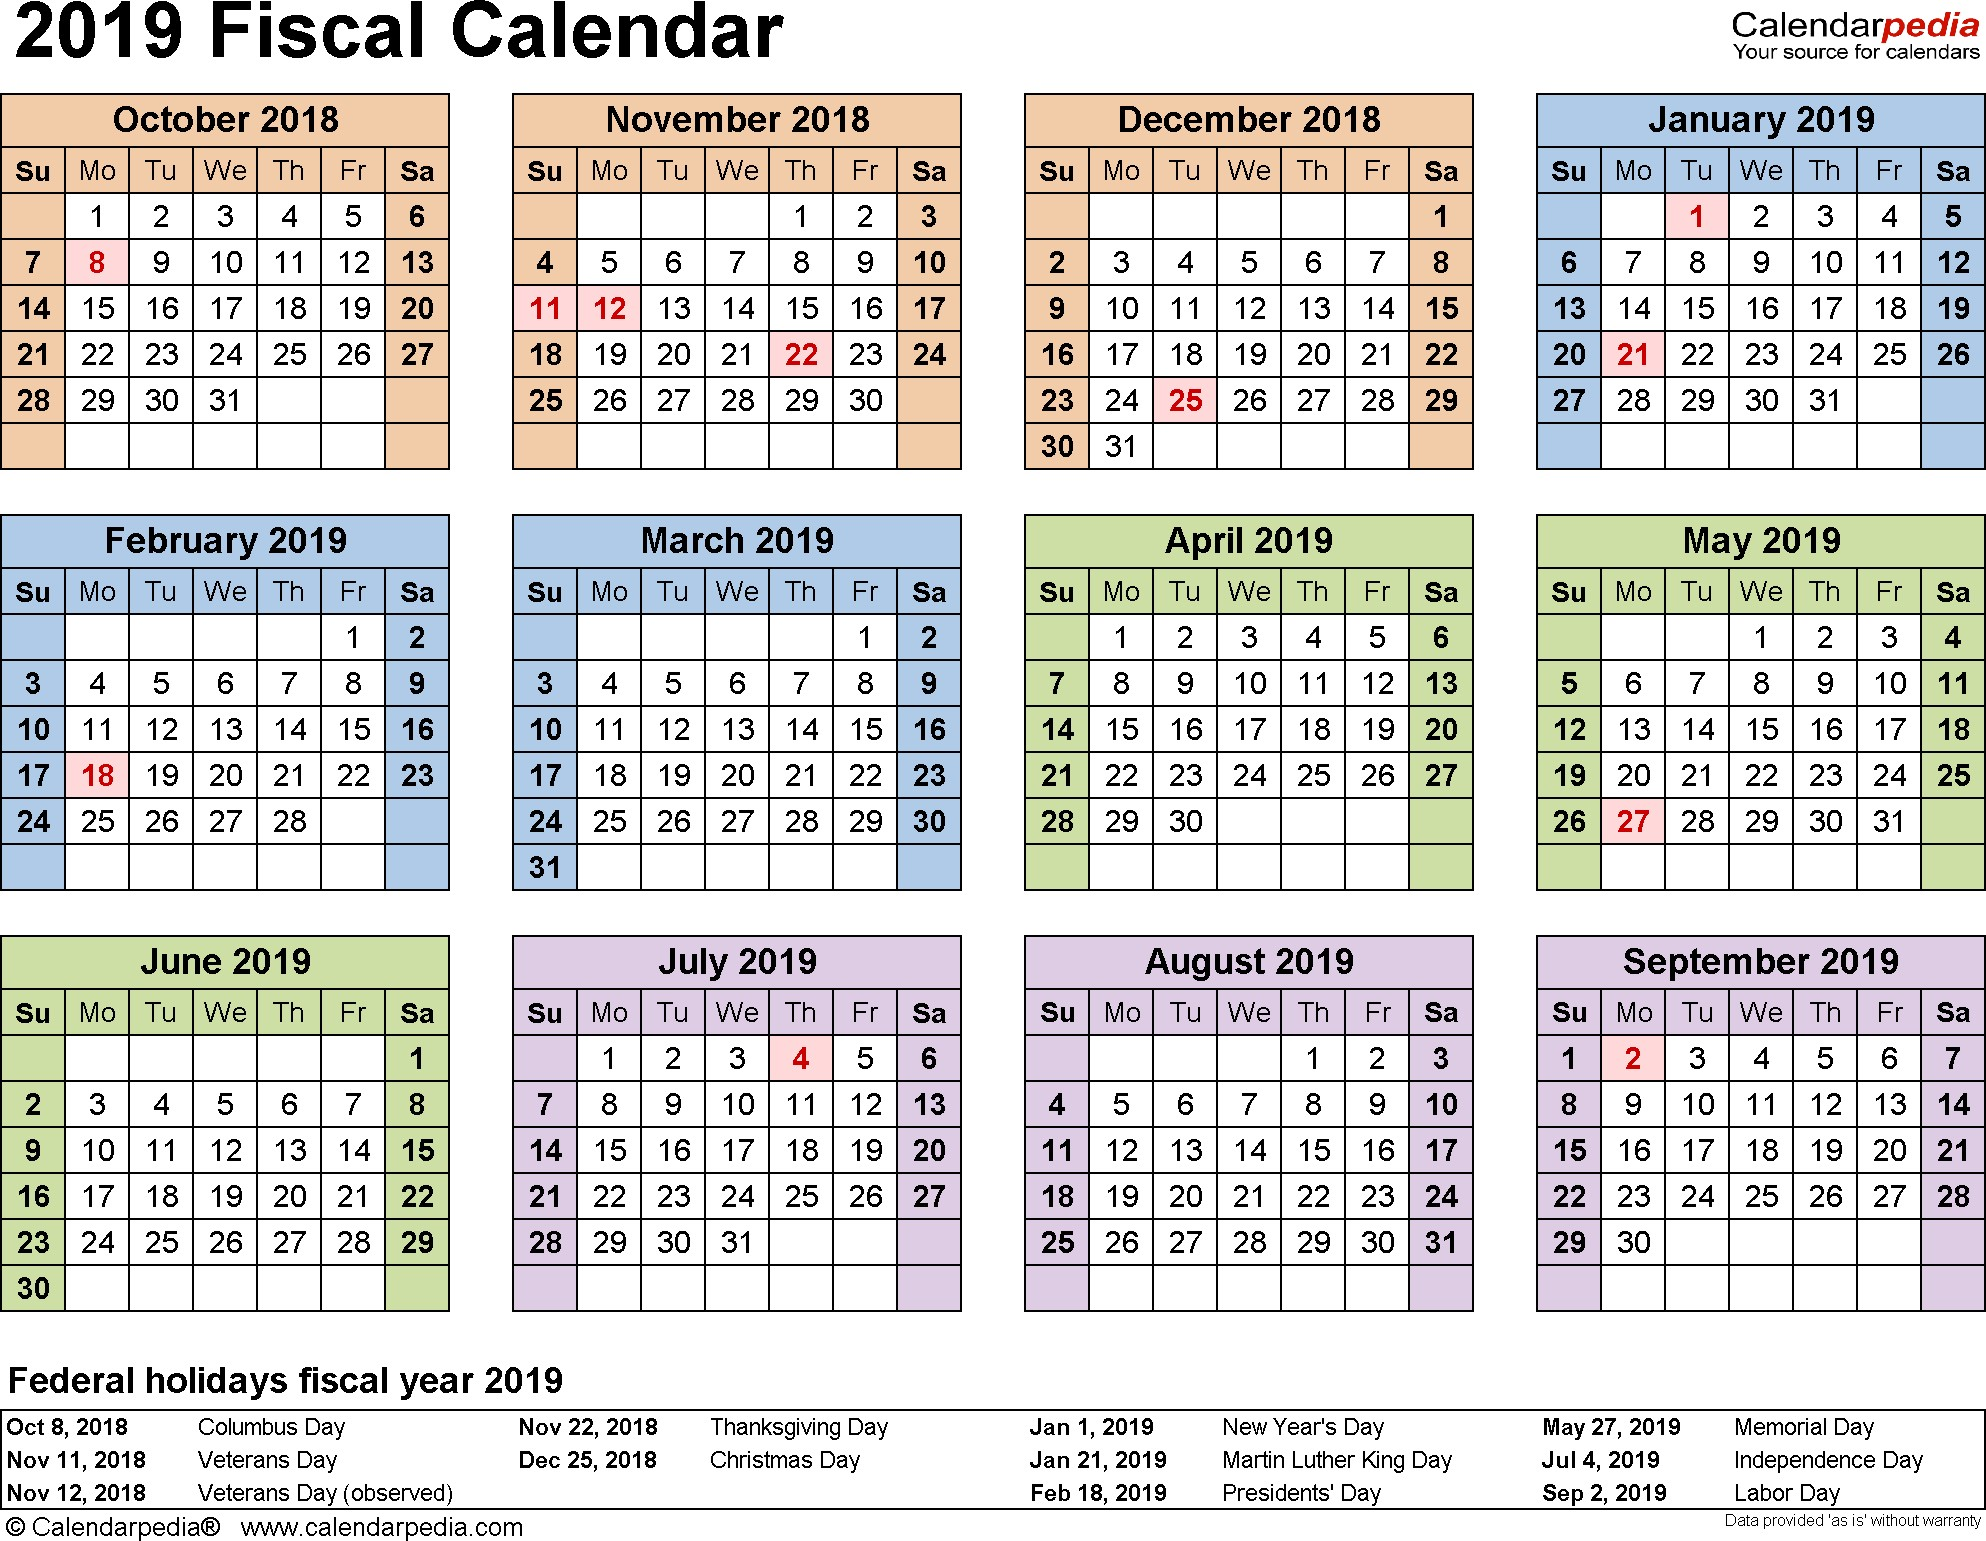 March Calendar 2019 Canada Más Caliente Fiscal Calendars 2019 as Free Printable Word Templates Of March Calendar 2019 Canada Más Actual 2019 Fiscal Calendar Lara Expolicenciaslatam